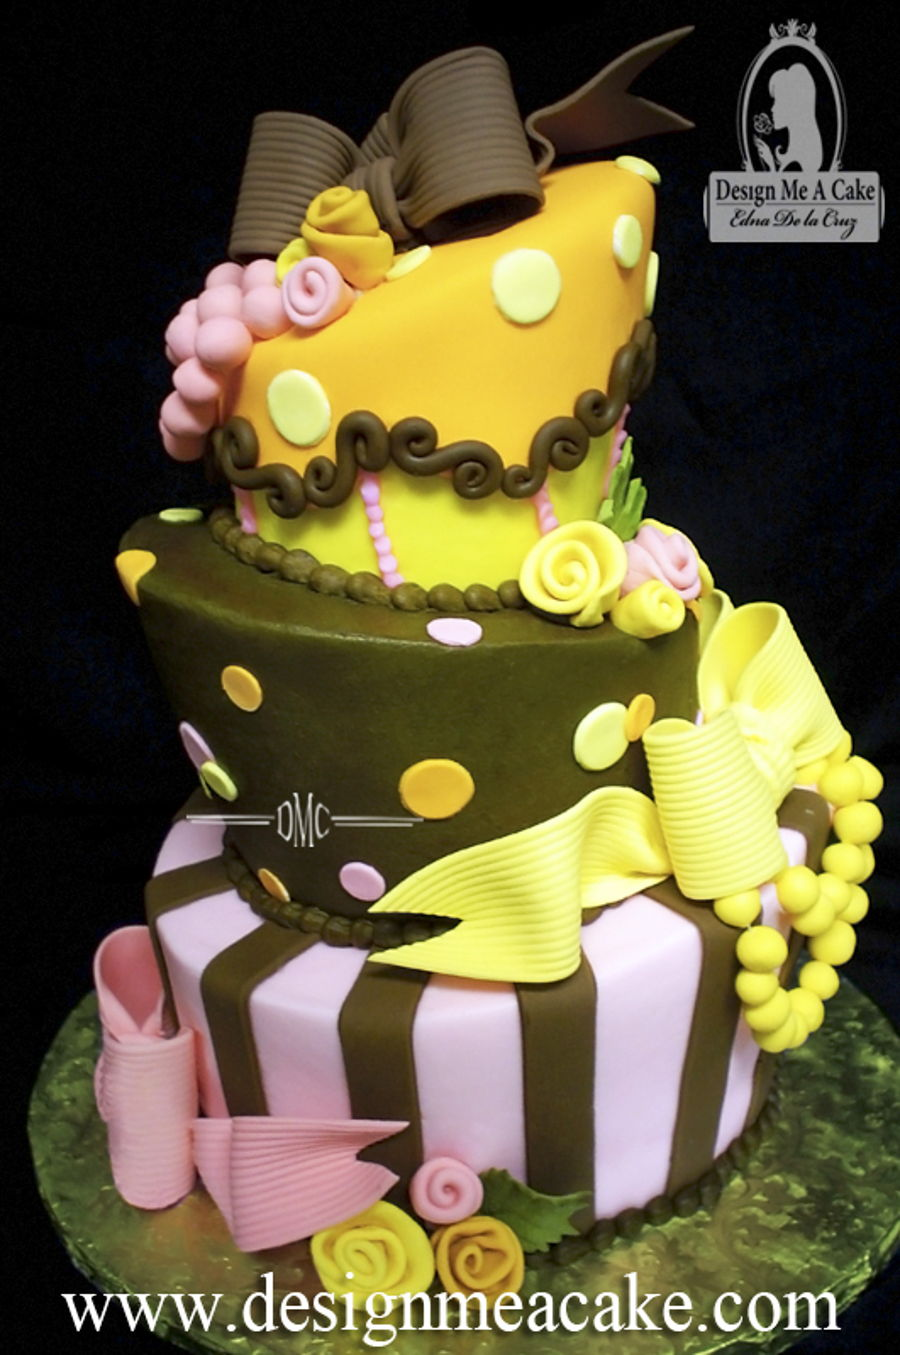 Topsy Turvy!  on Cake Central